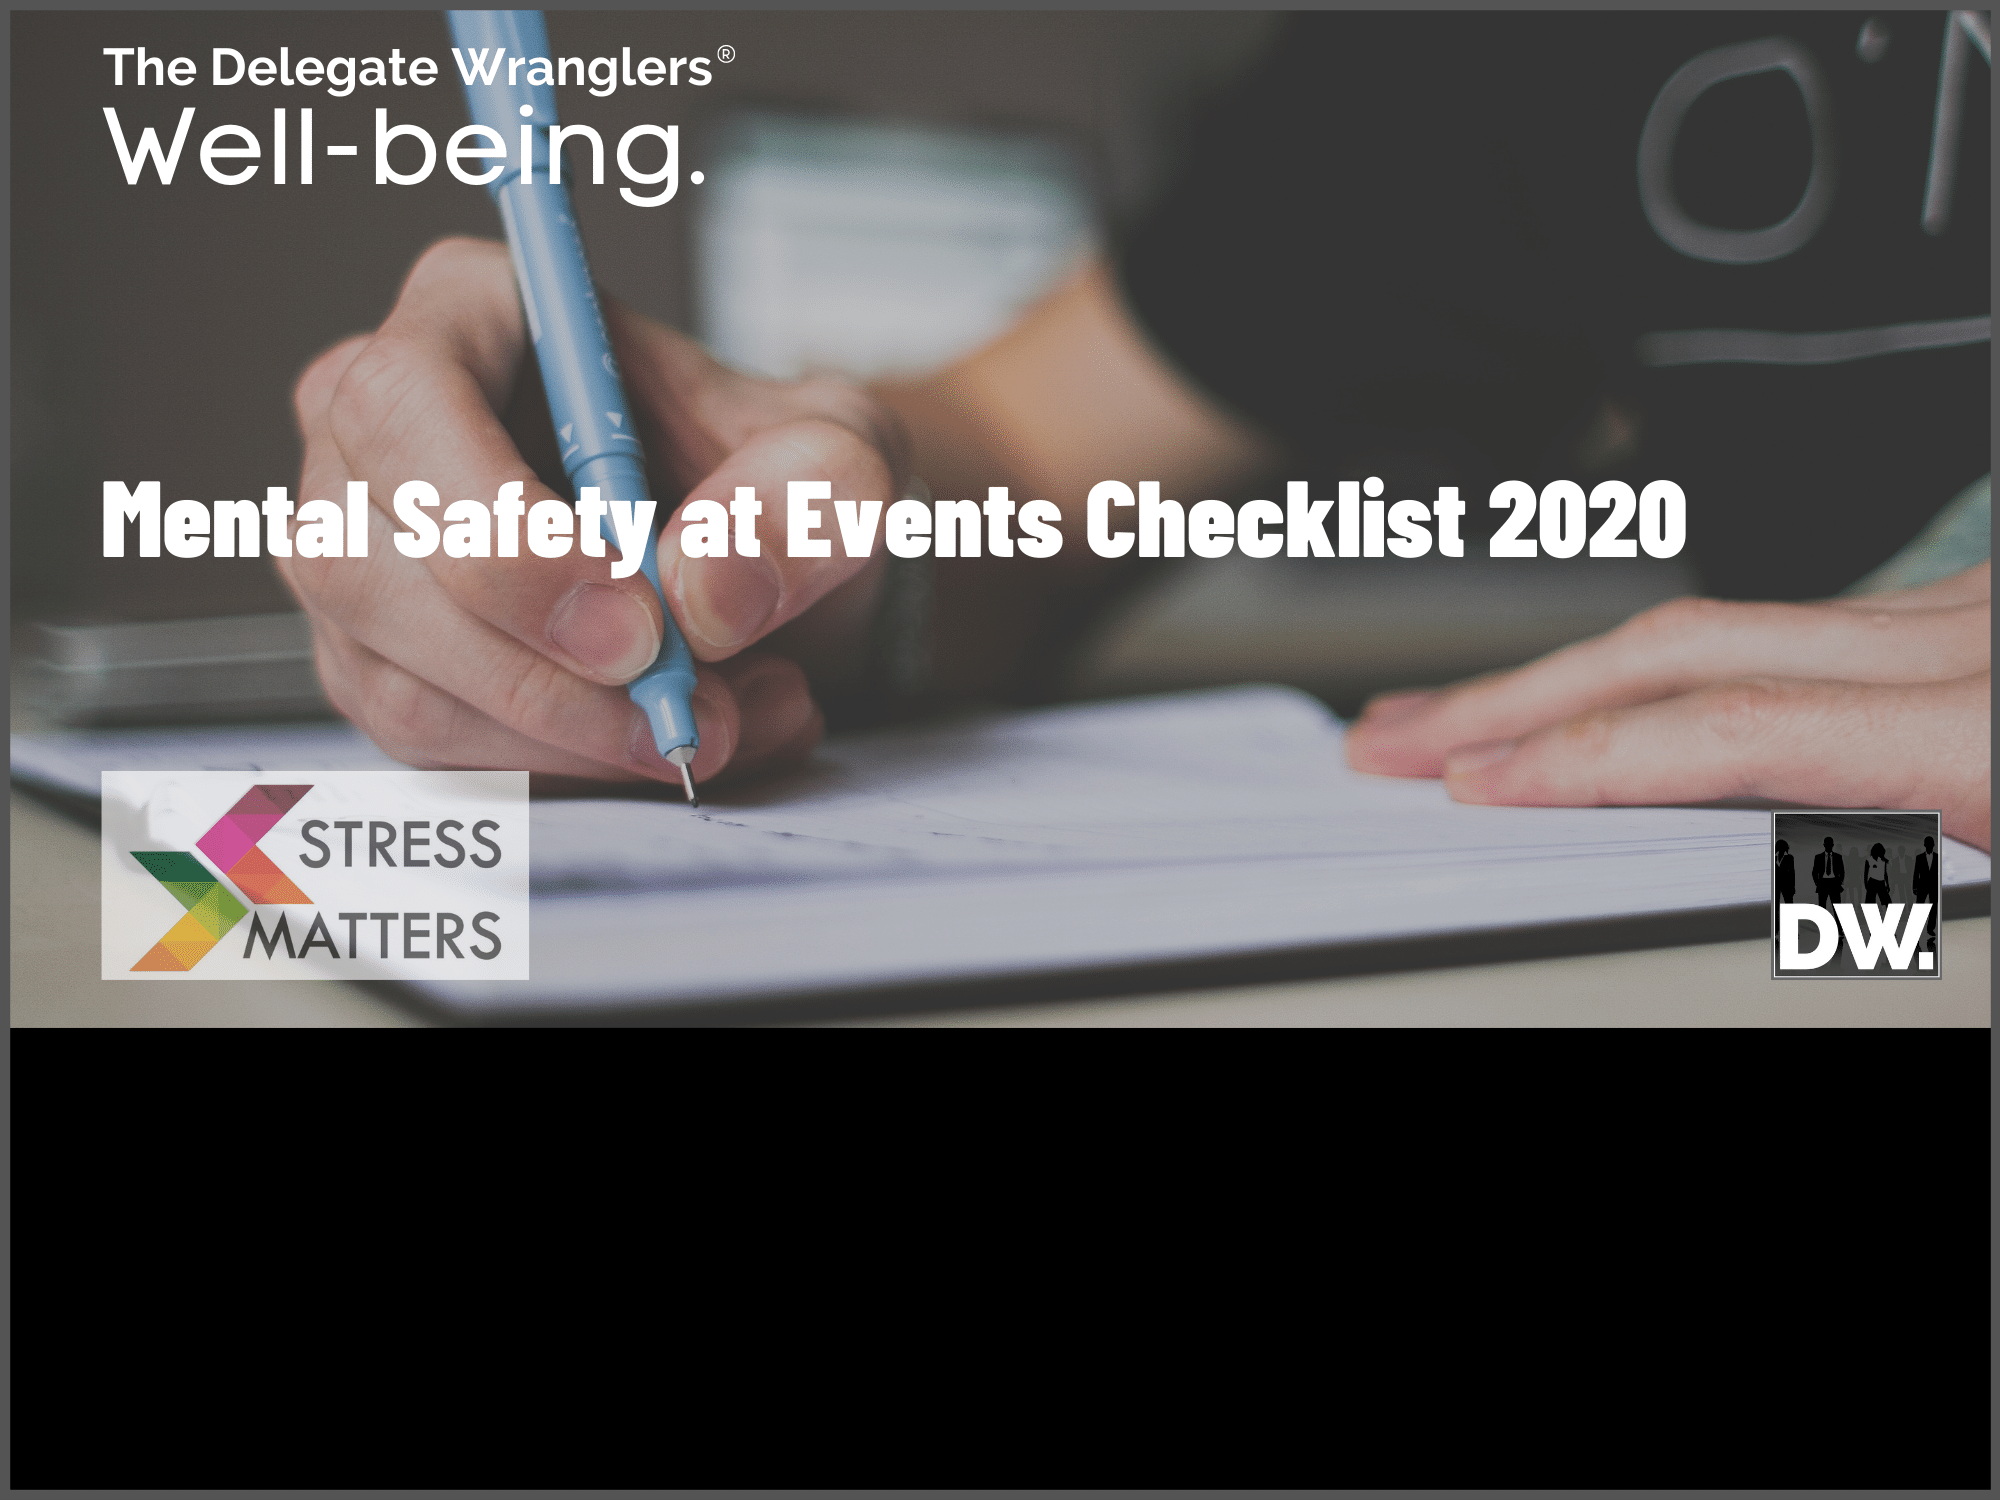 Stress Matters produce their their 'Mental Safety at Events Checklist 2020'